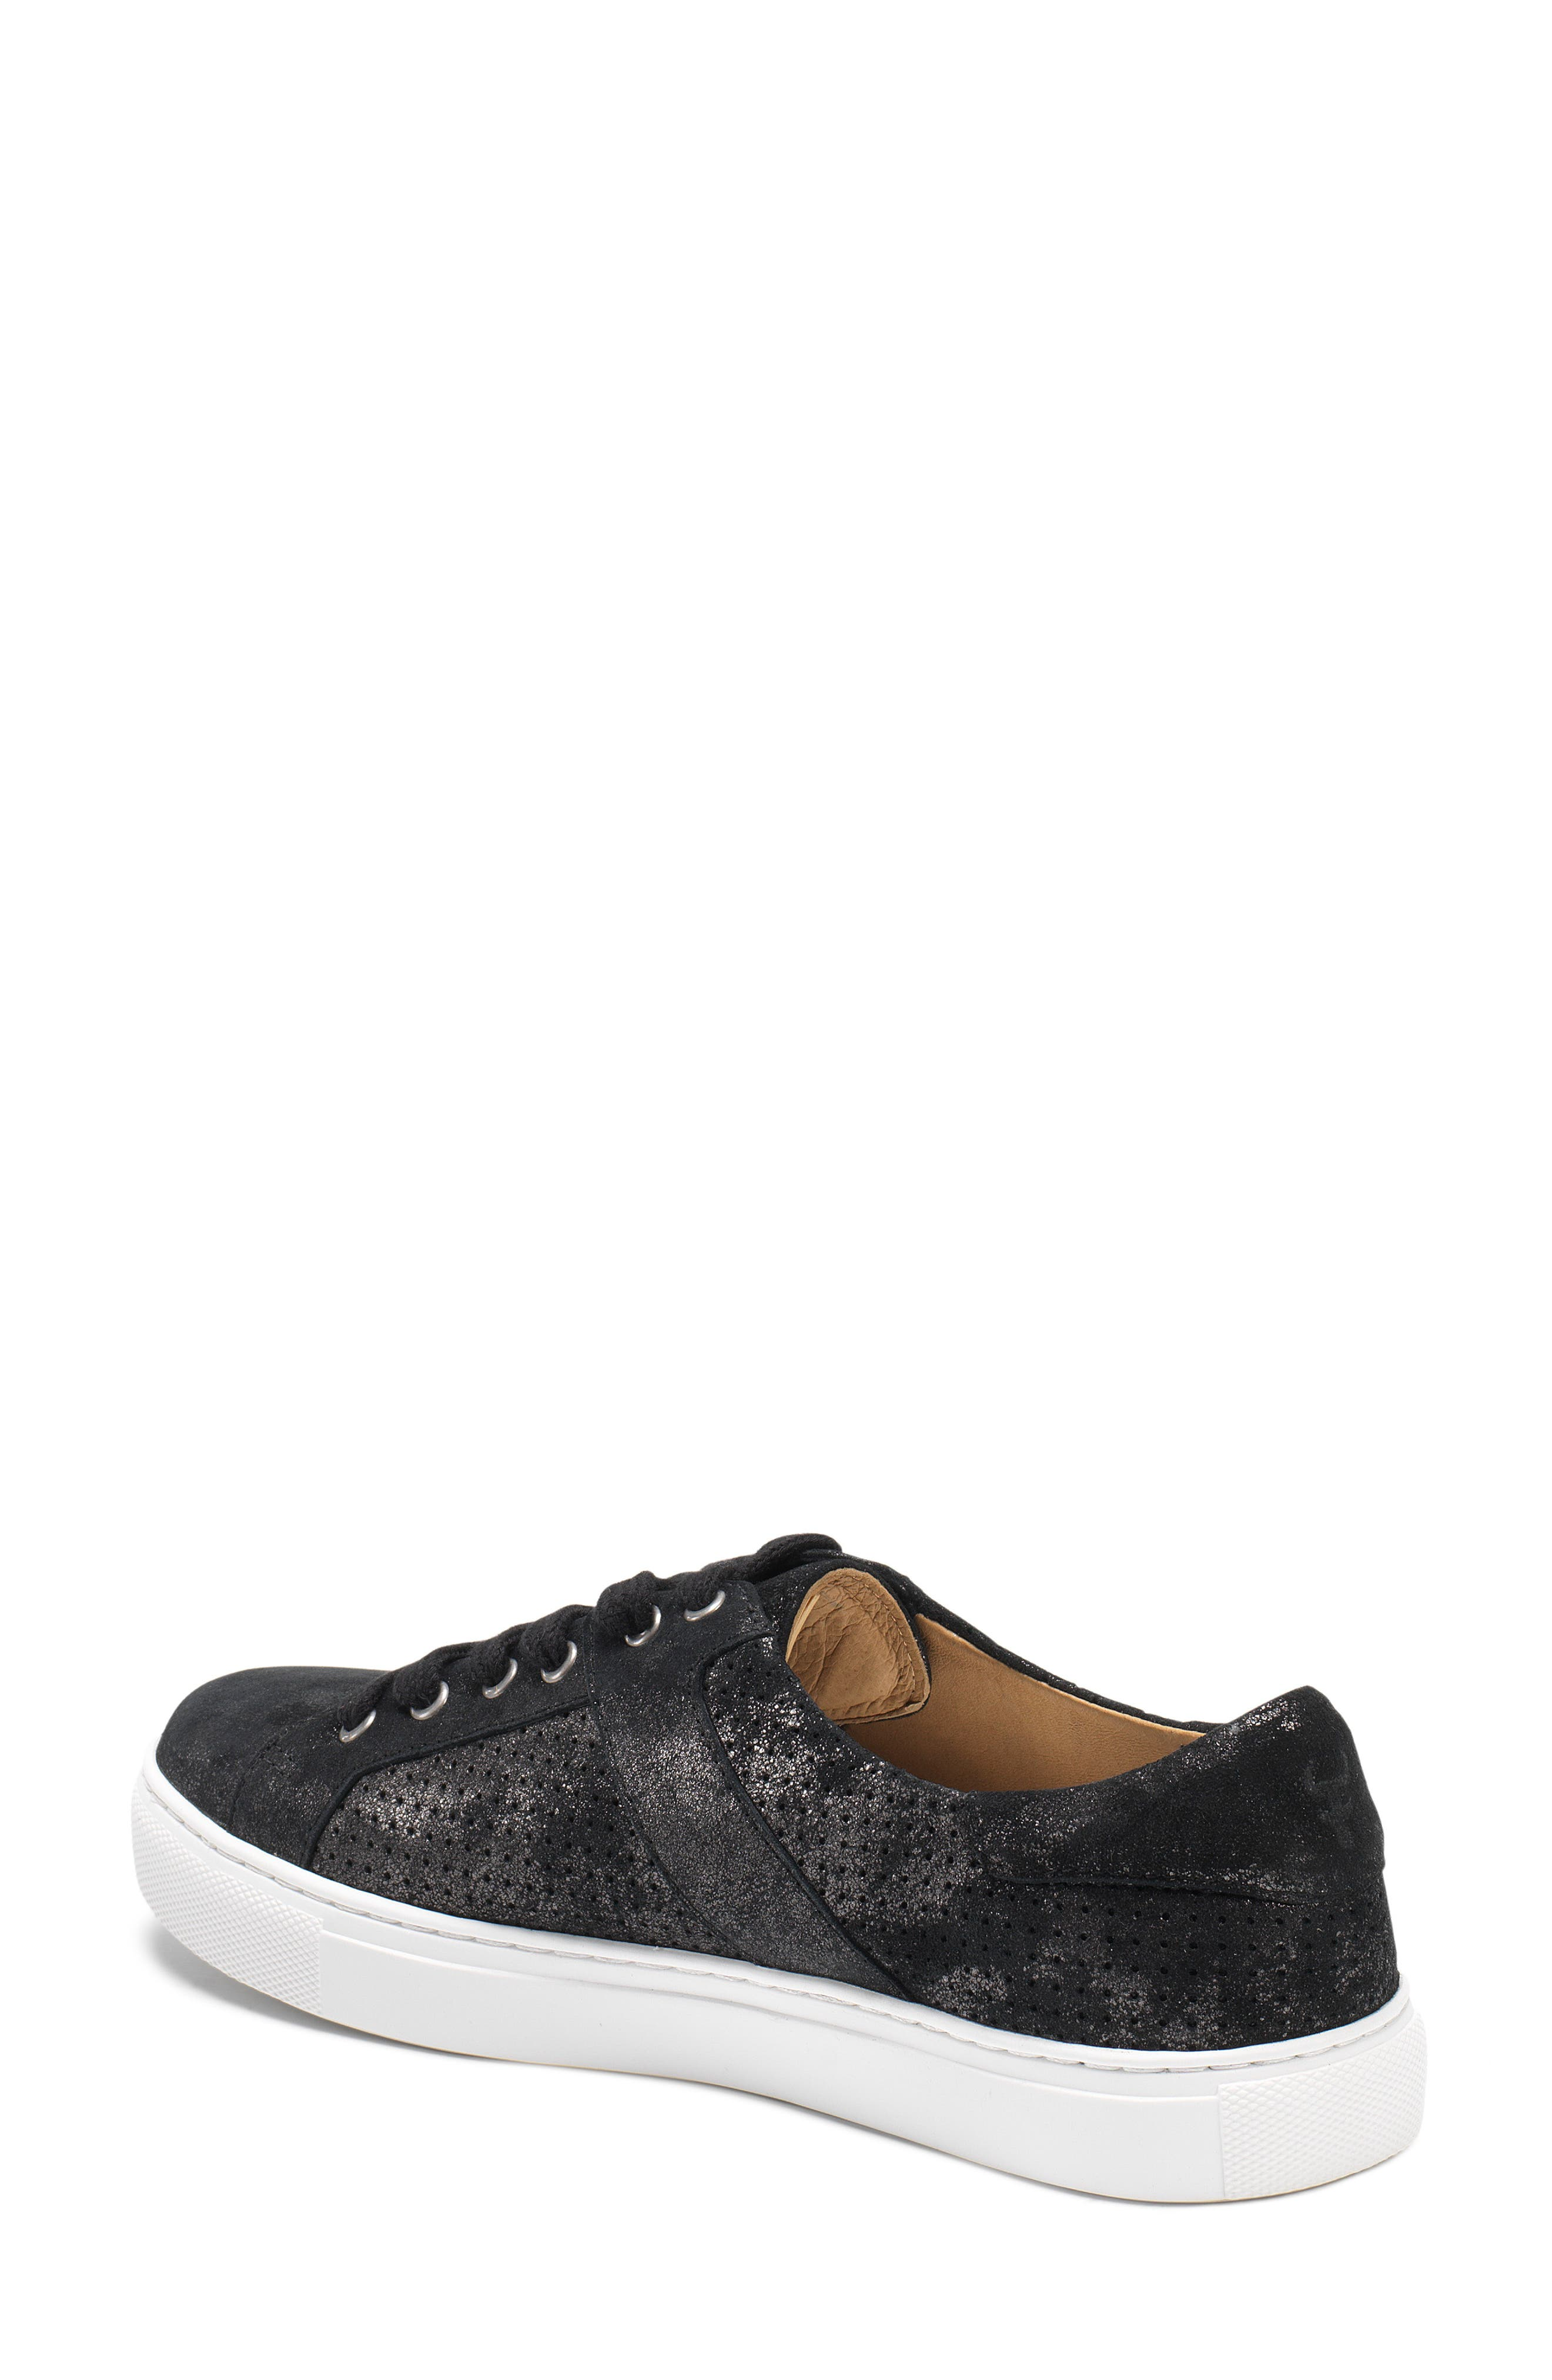 Lindsey Sneaker,                             Alternate thumbnail 2, color,                             BLACK METALLIC LEATHER